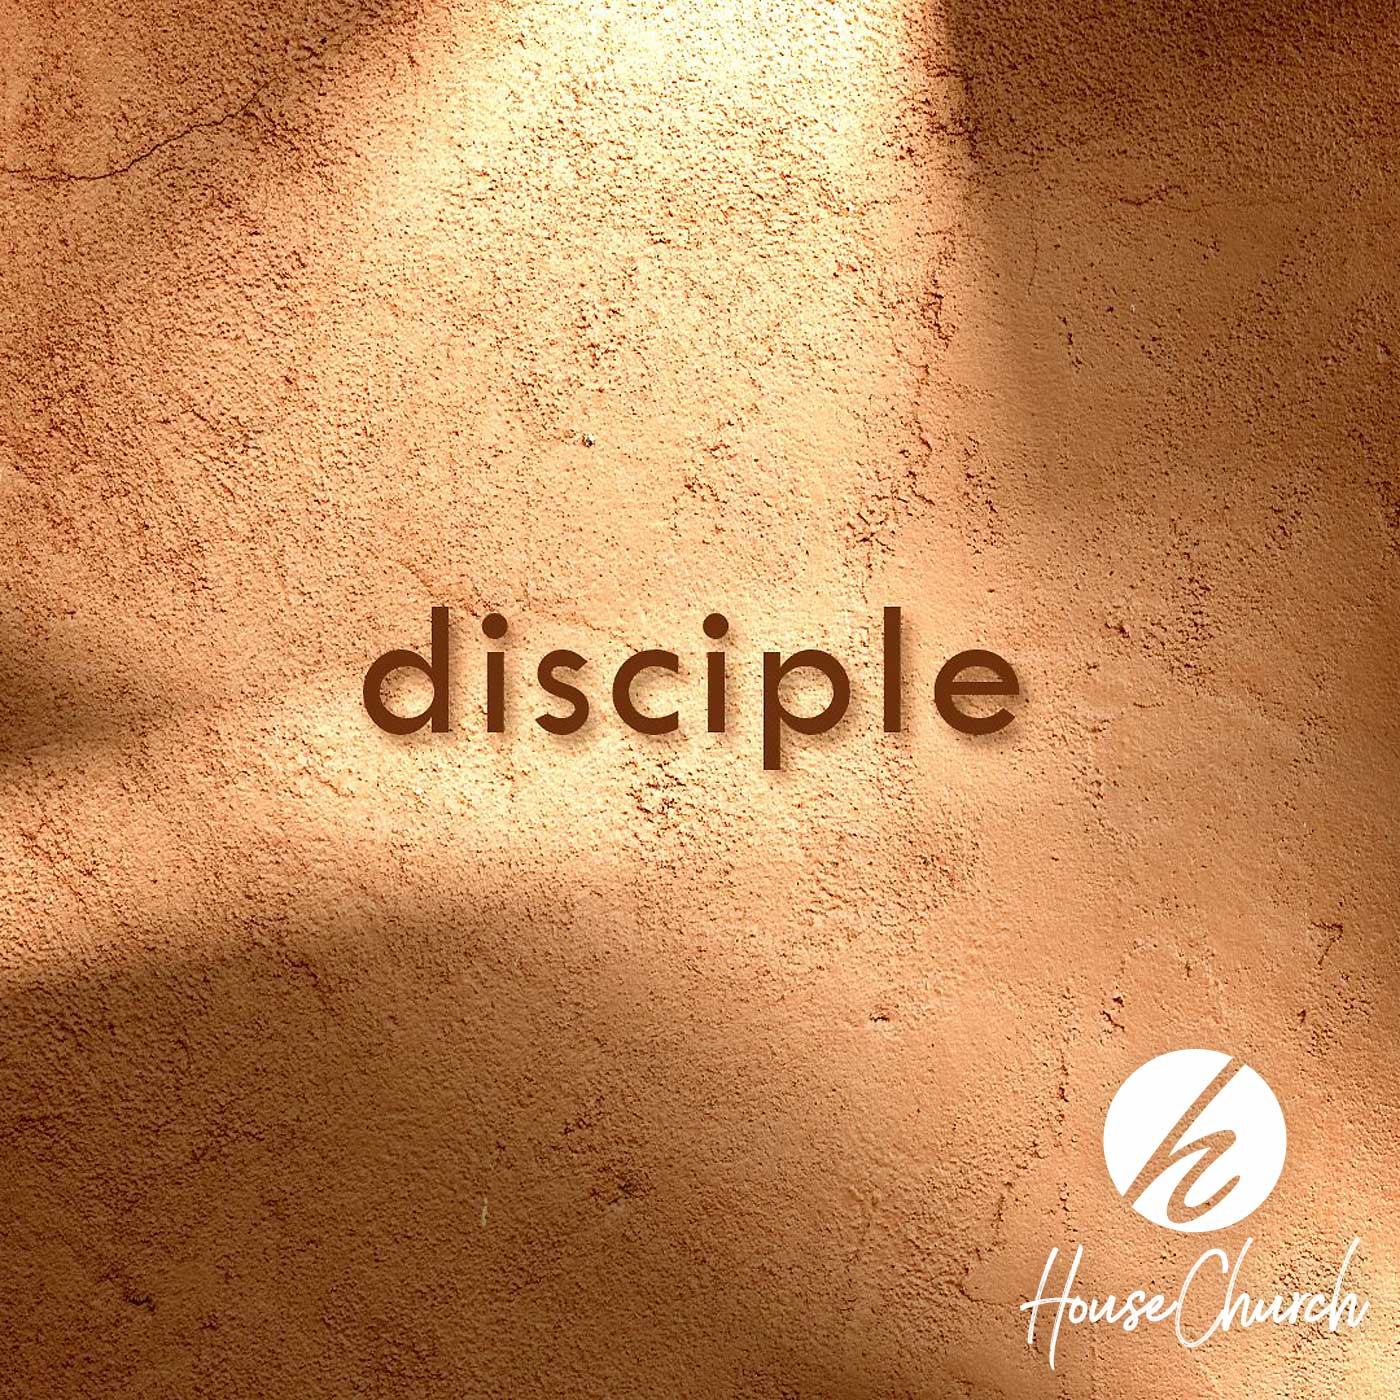 Disciple – Part 2